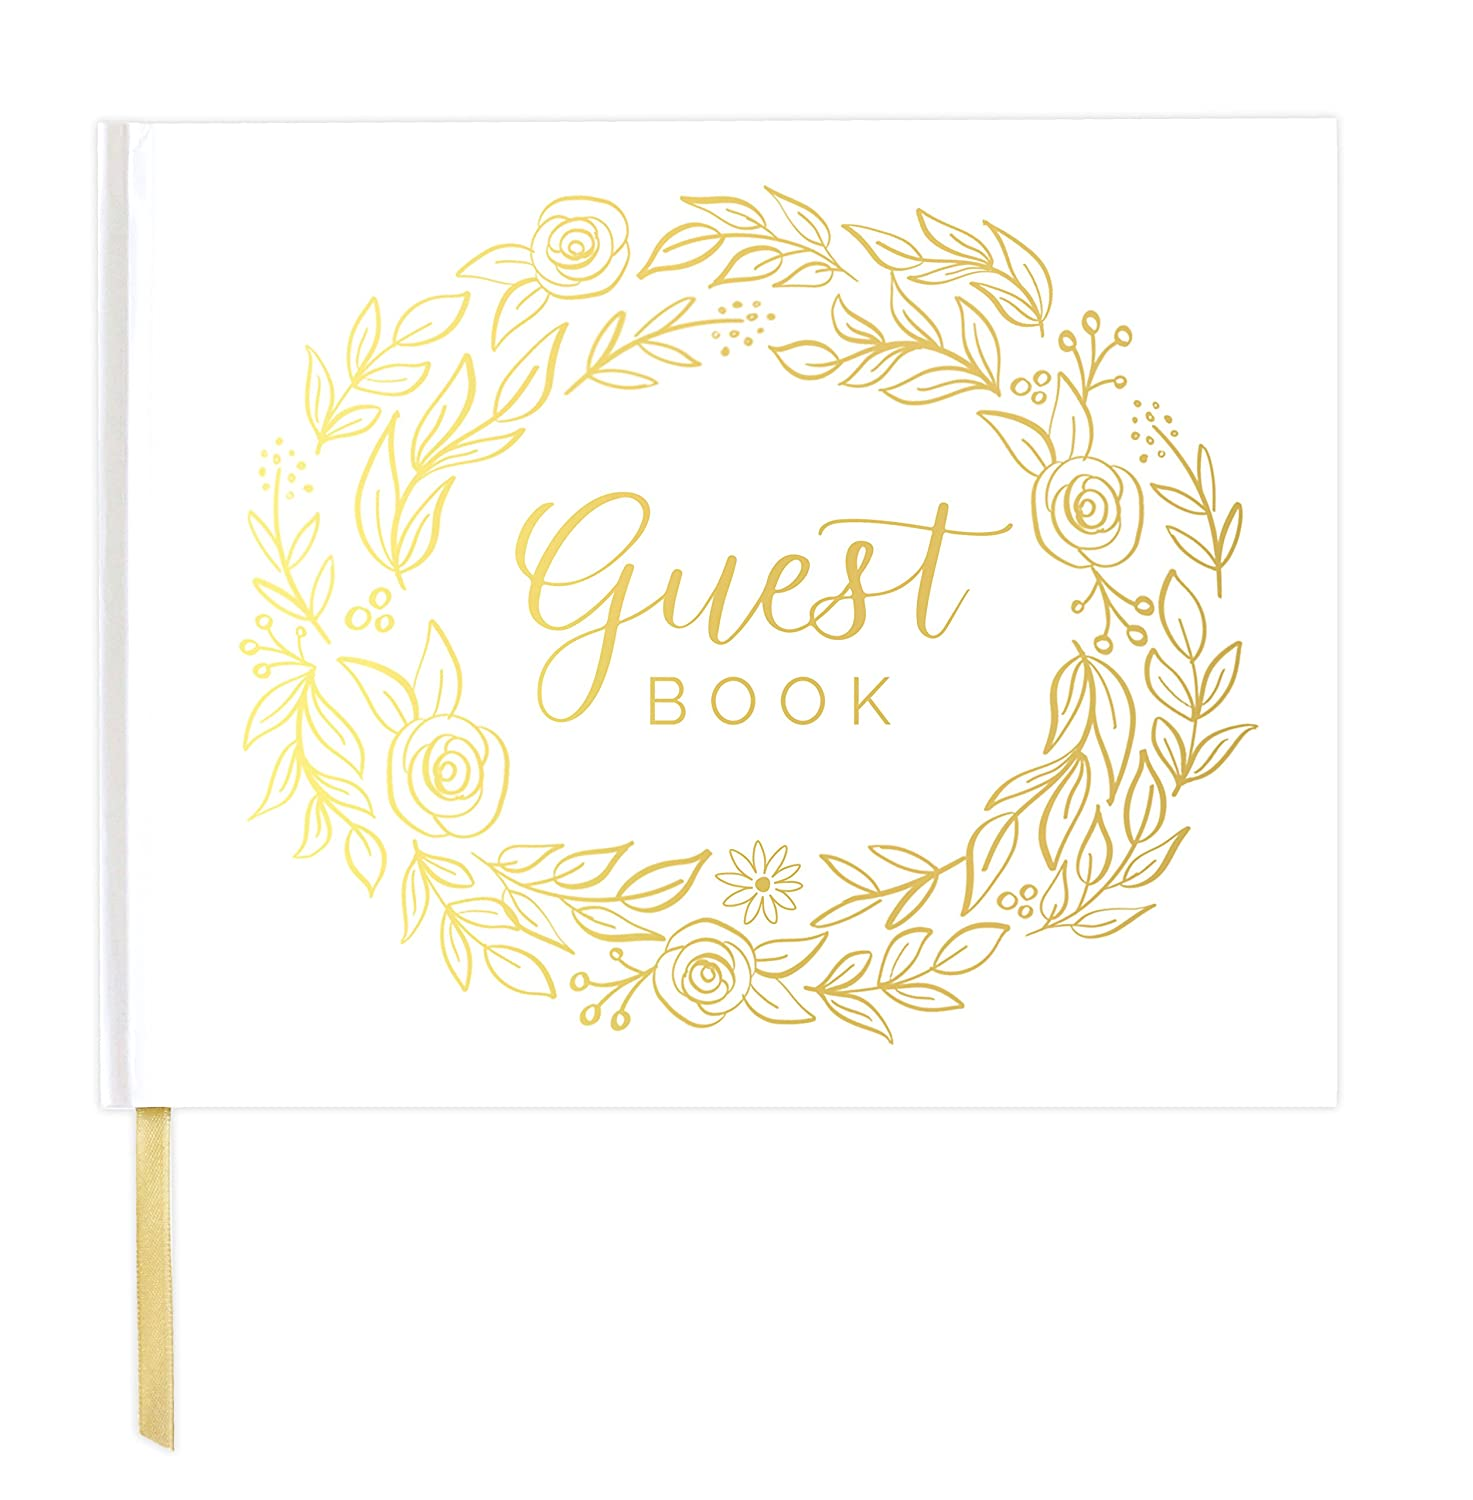 bloom daily planners Wedding Guest Book (120 Pages) Guest Sign-in Book Guest Registry Guestbook - White Cover with Gold Foil, Gilded Edges and Gold Page Marker Hardbound 7 x 9 - Floral